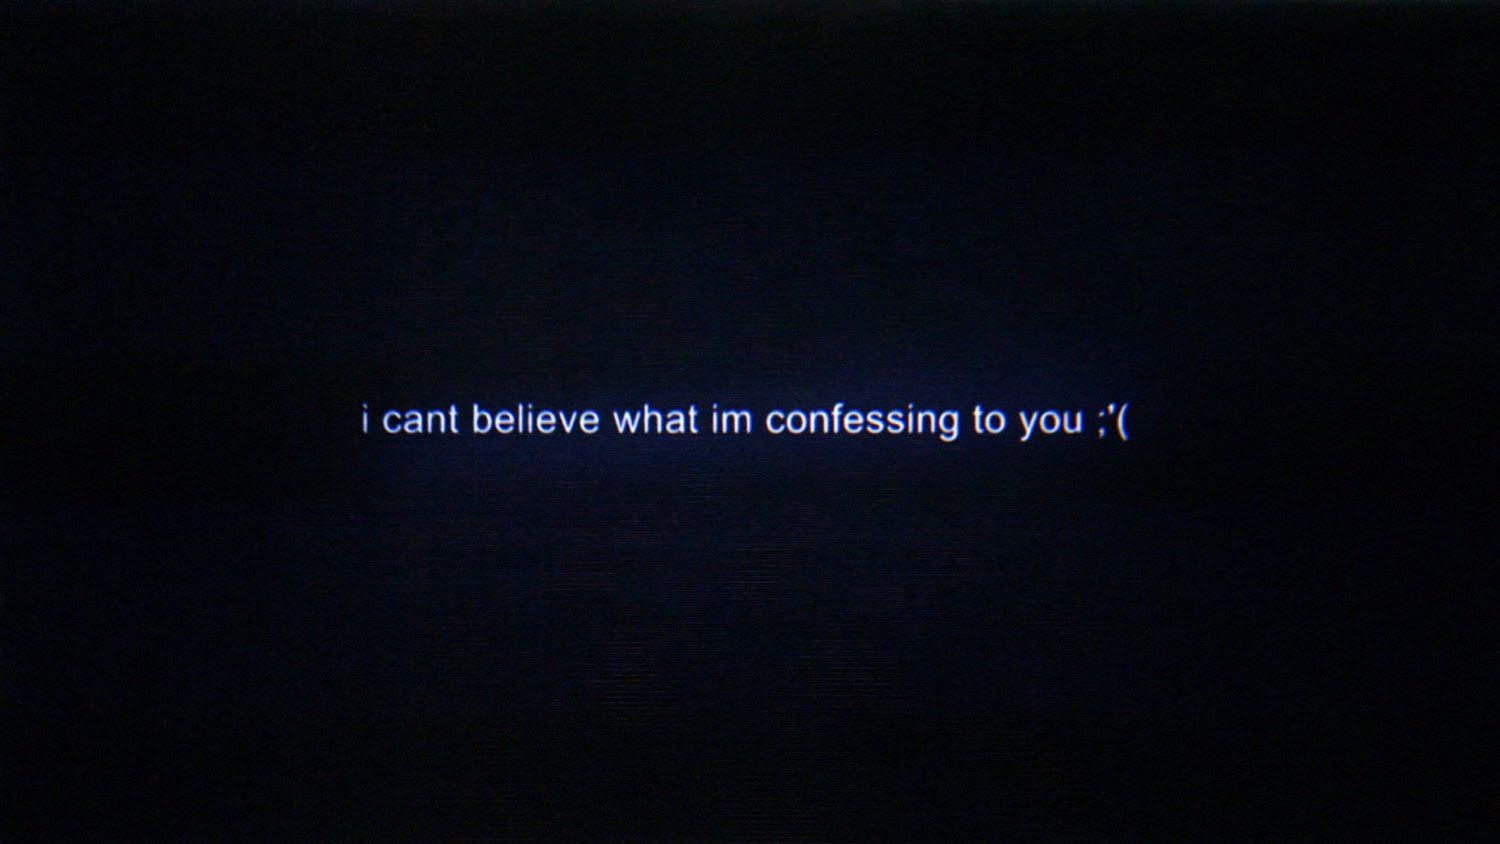 I can't believe what I am confessing to you :'(